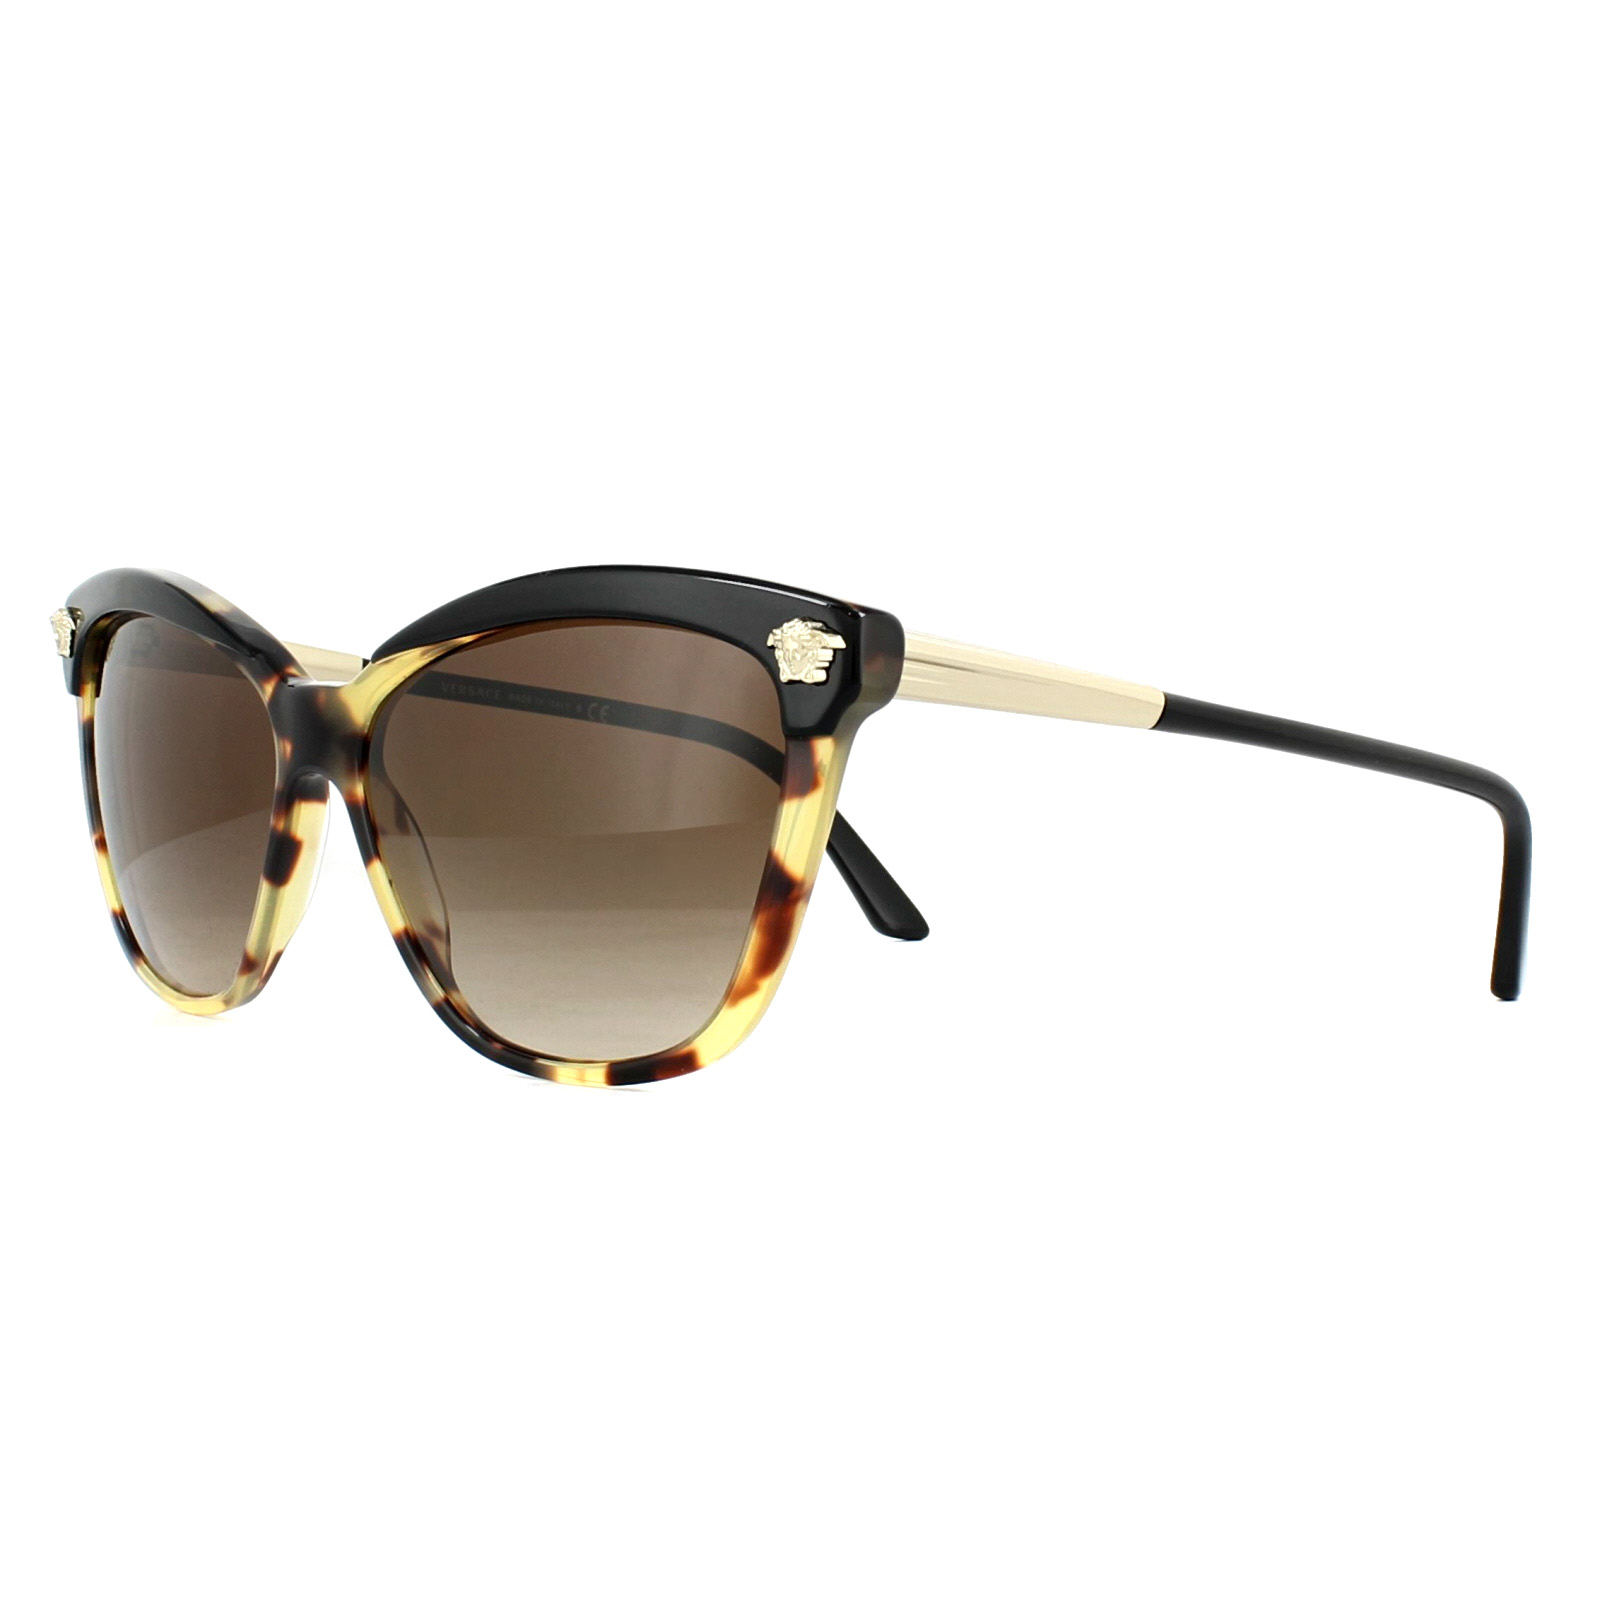 e268b6436cb Sentinel Versace Sunglasses VE4313 517713 Black Havana Brown Gradient